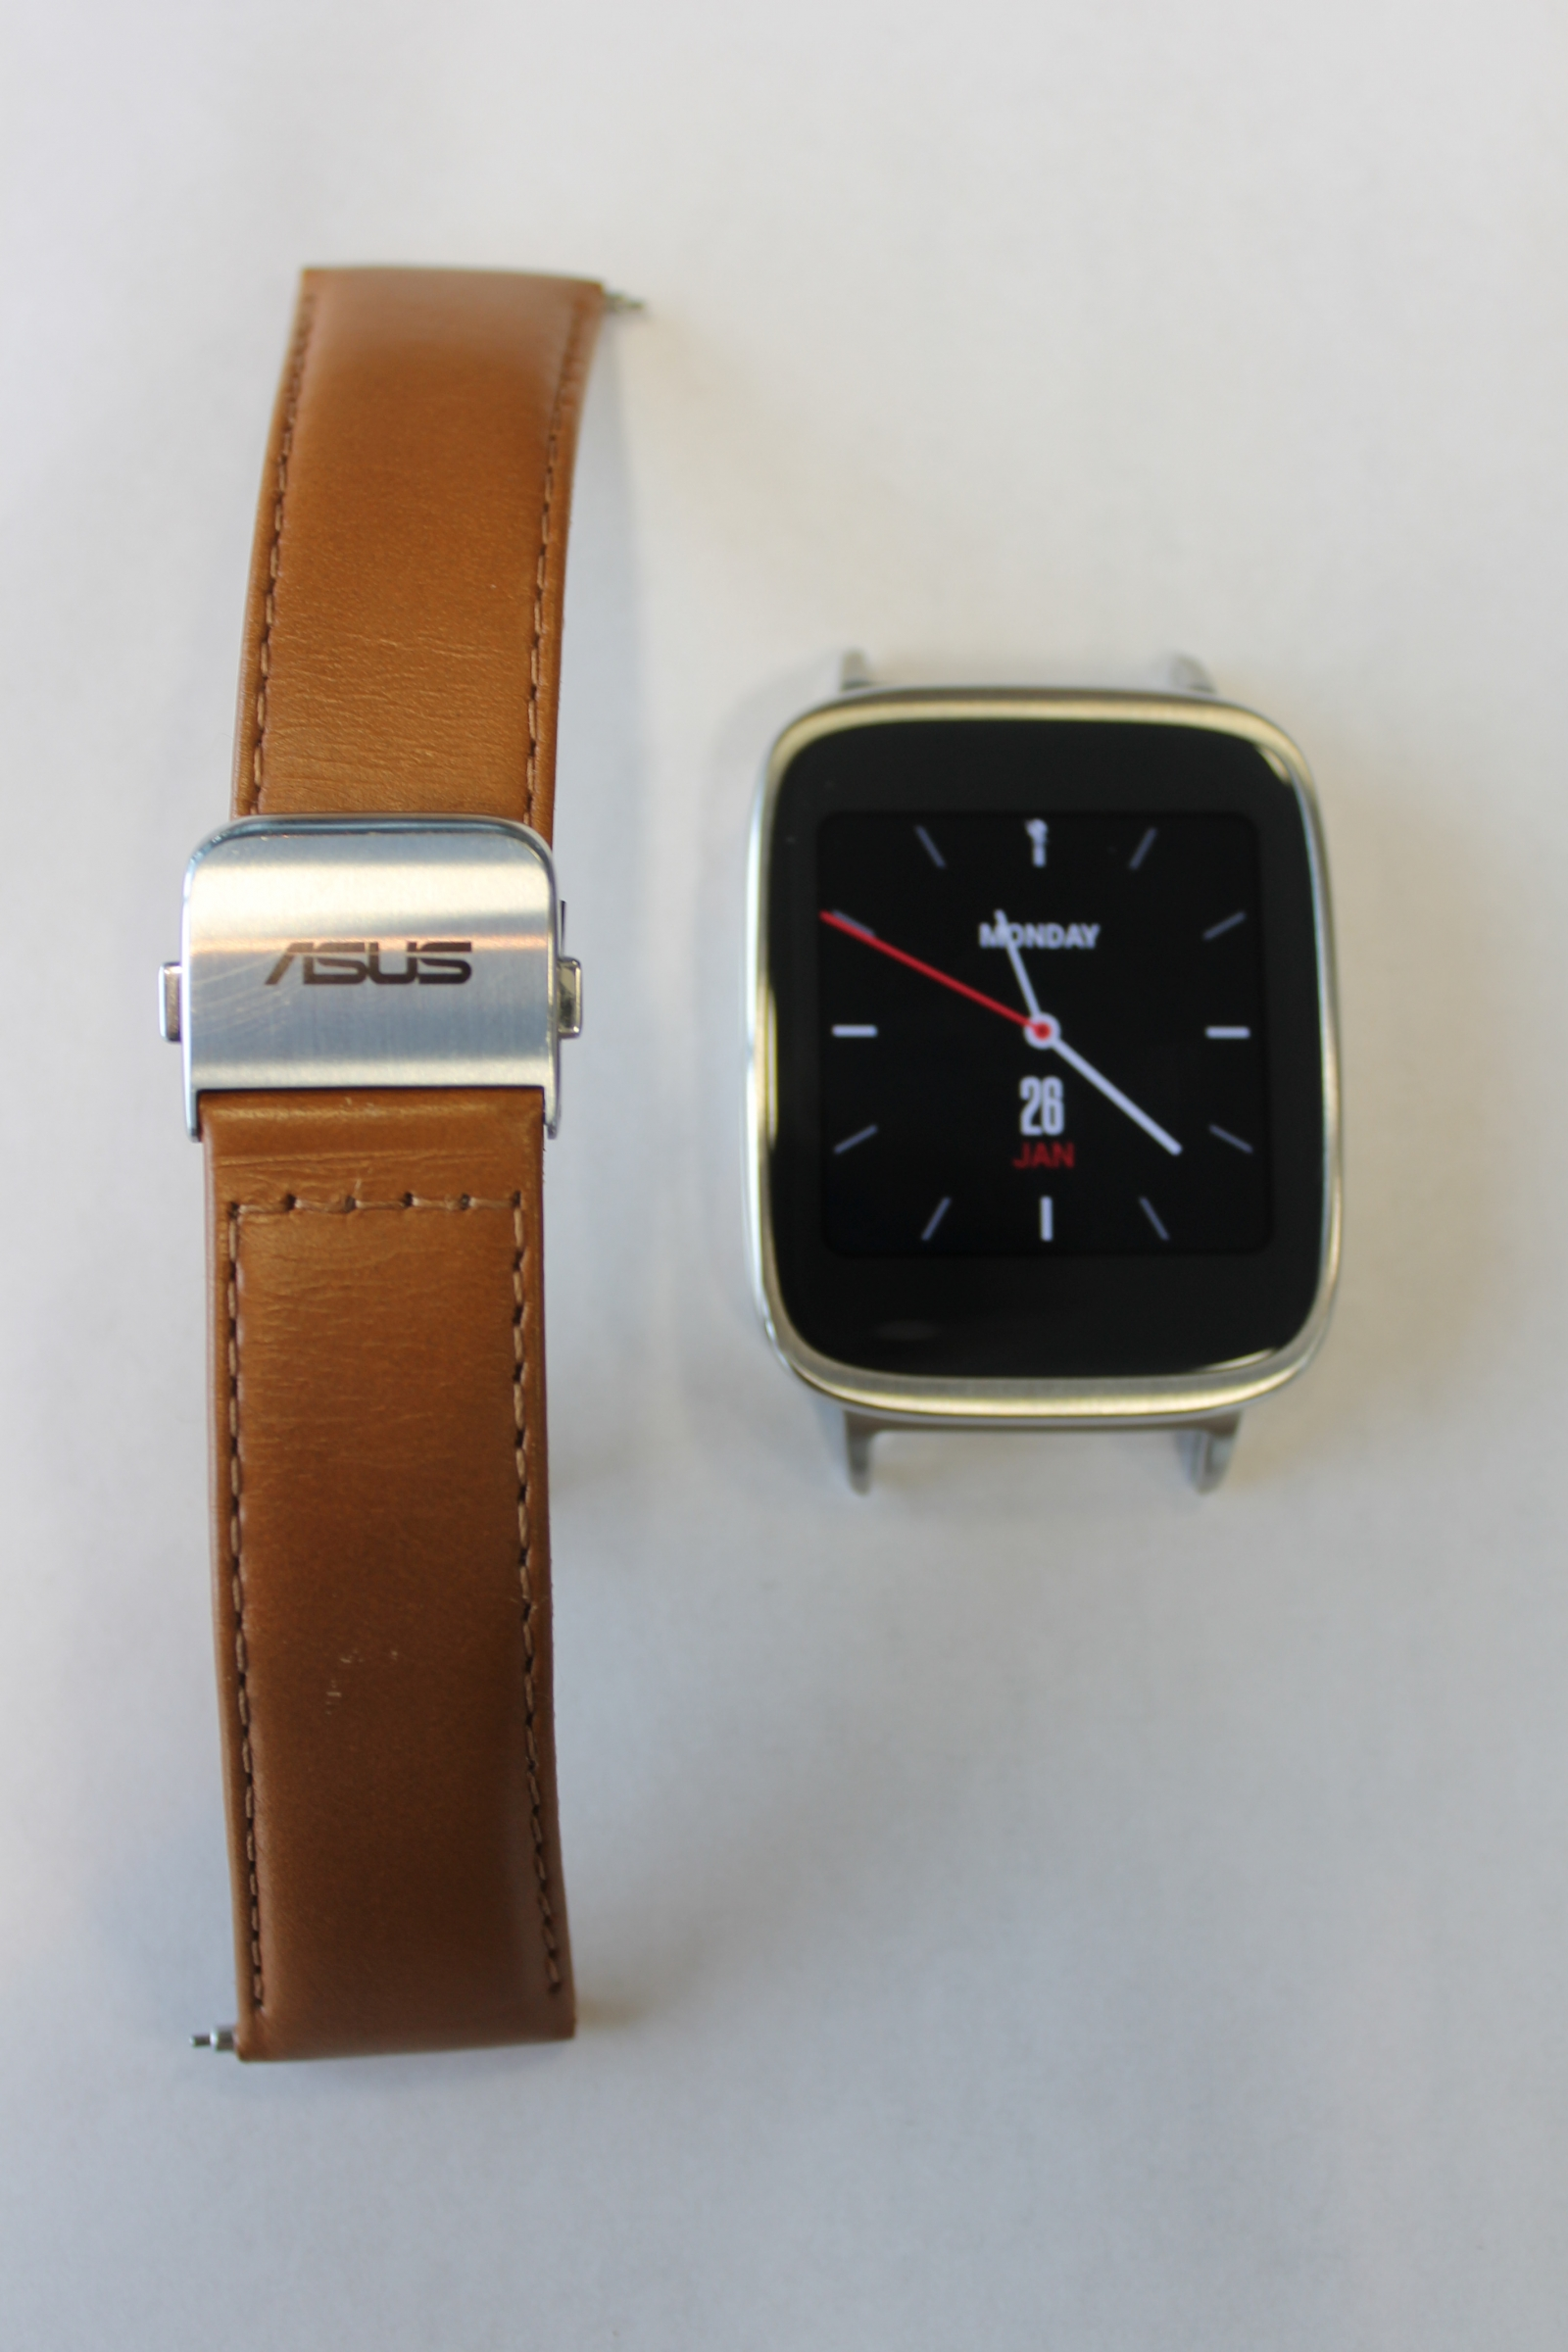 Asus ZenWatch review specs